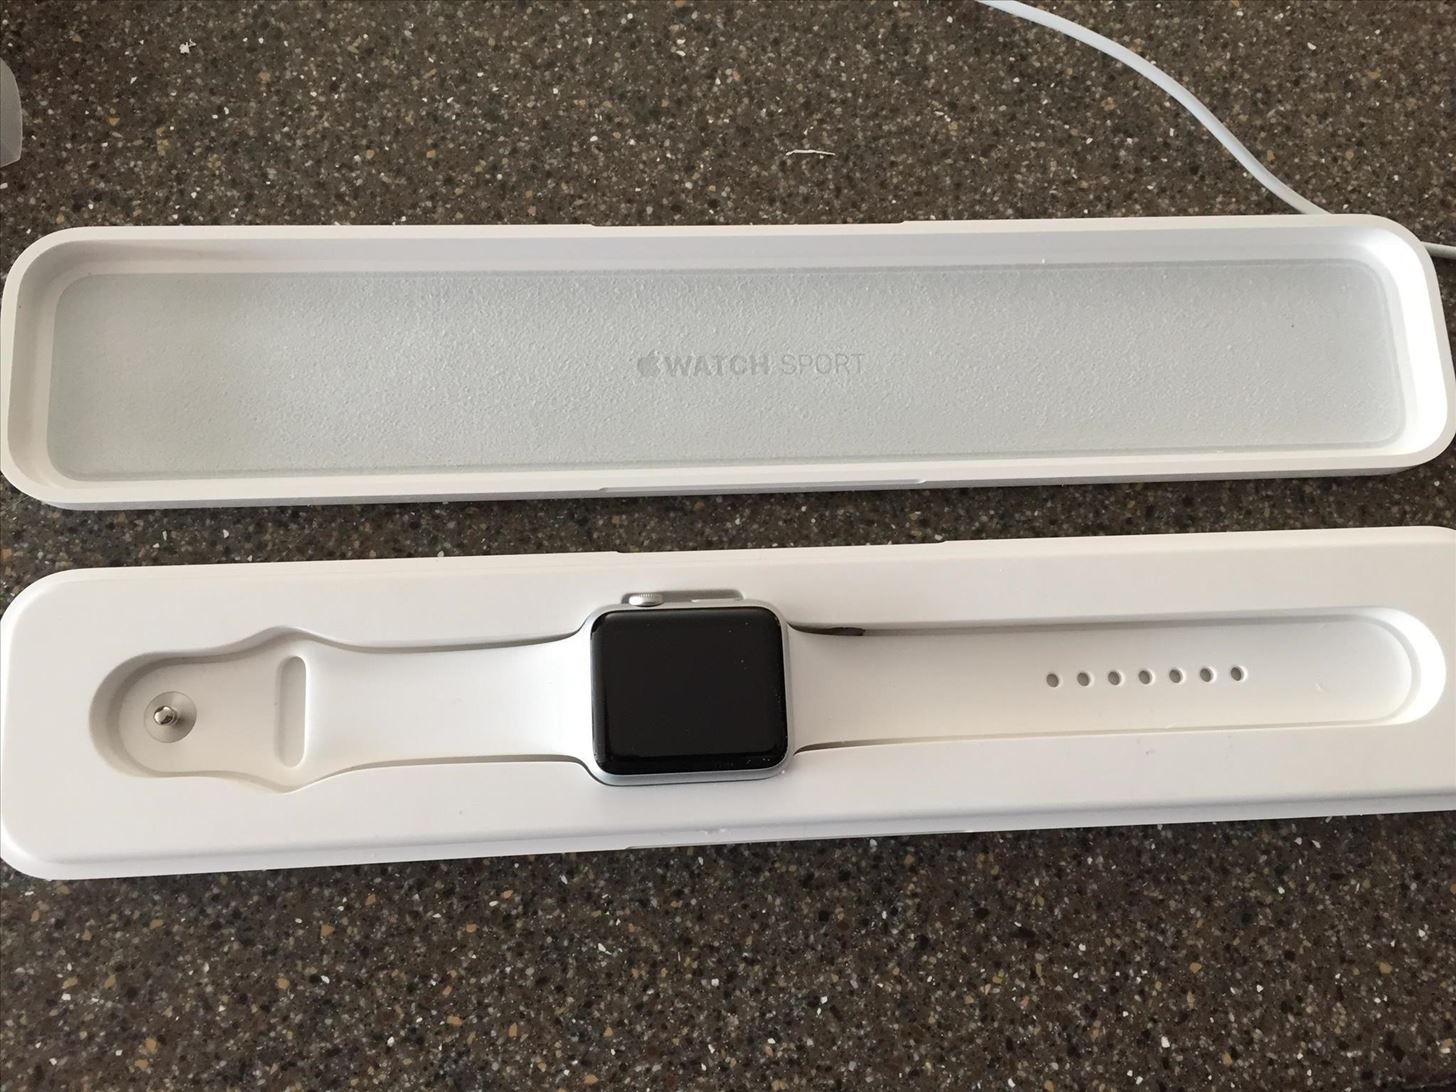 How to Turn Your Apple Watch Case into a Charging Dock